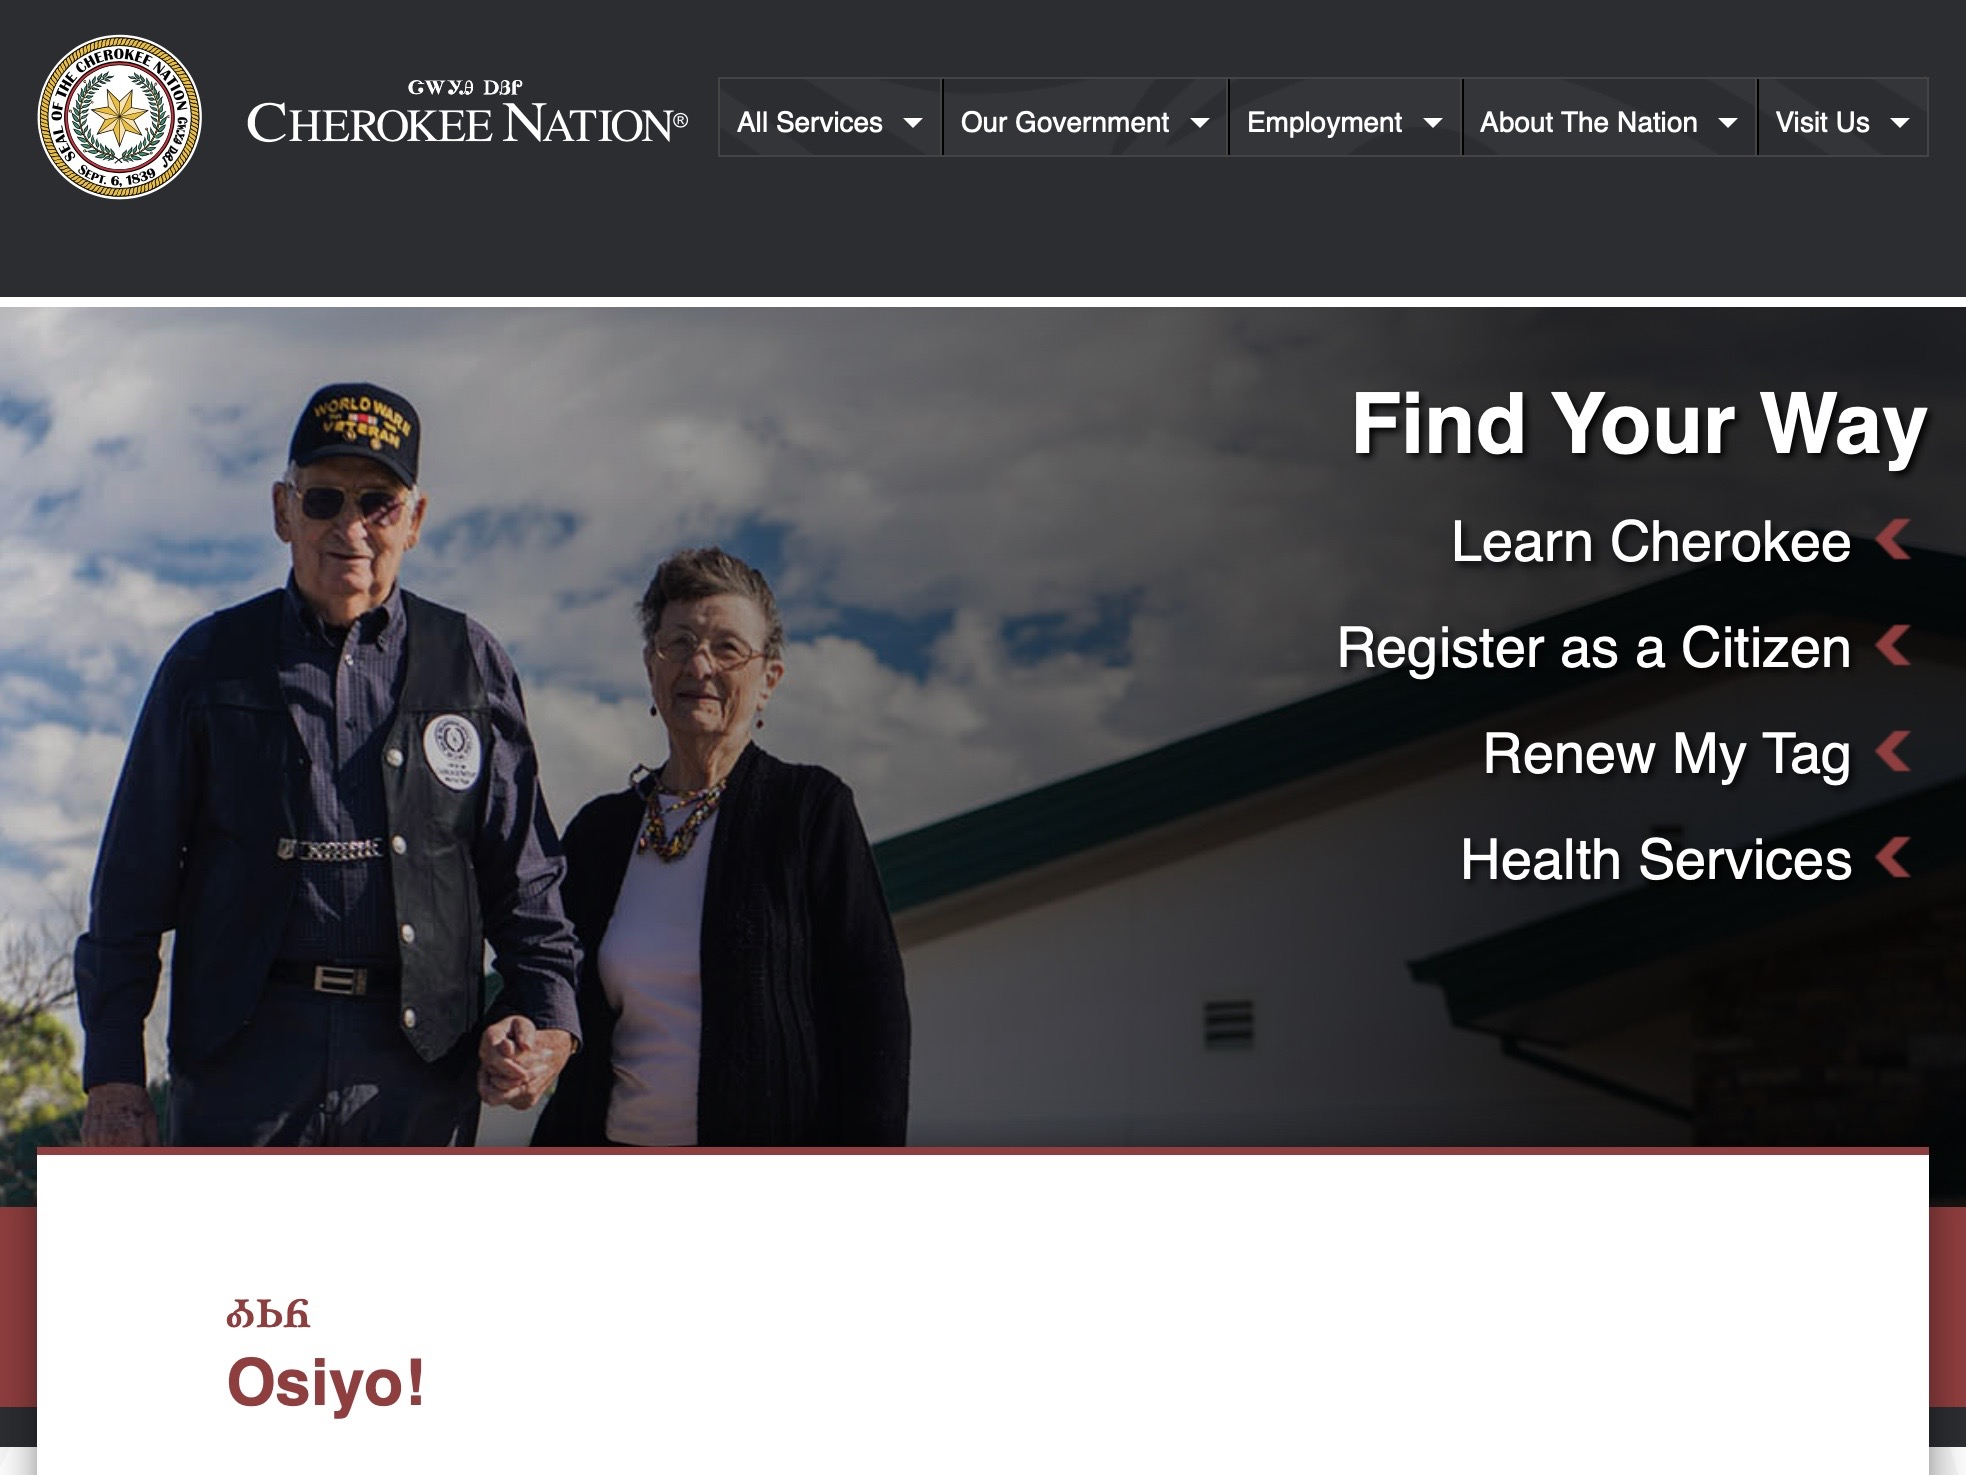 Bill John Baker: Cherokee Nation takes giant leap forward with website